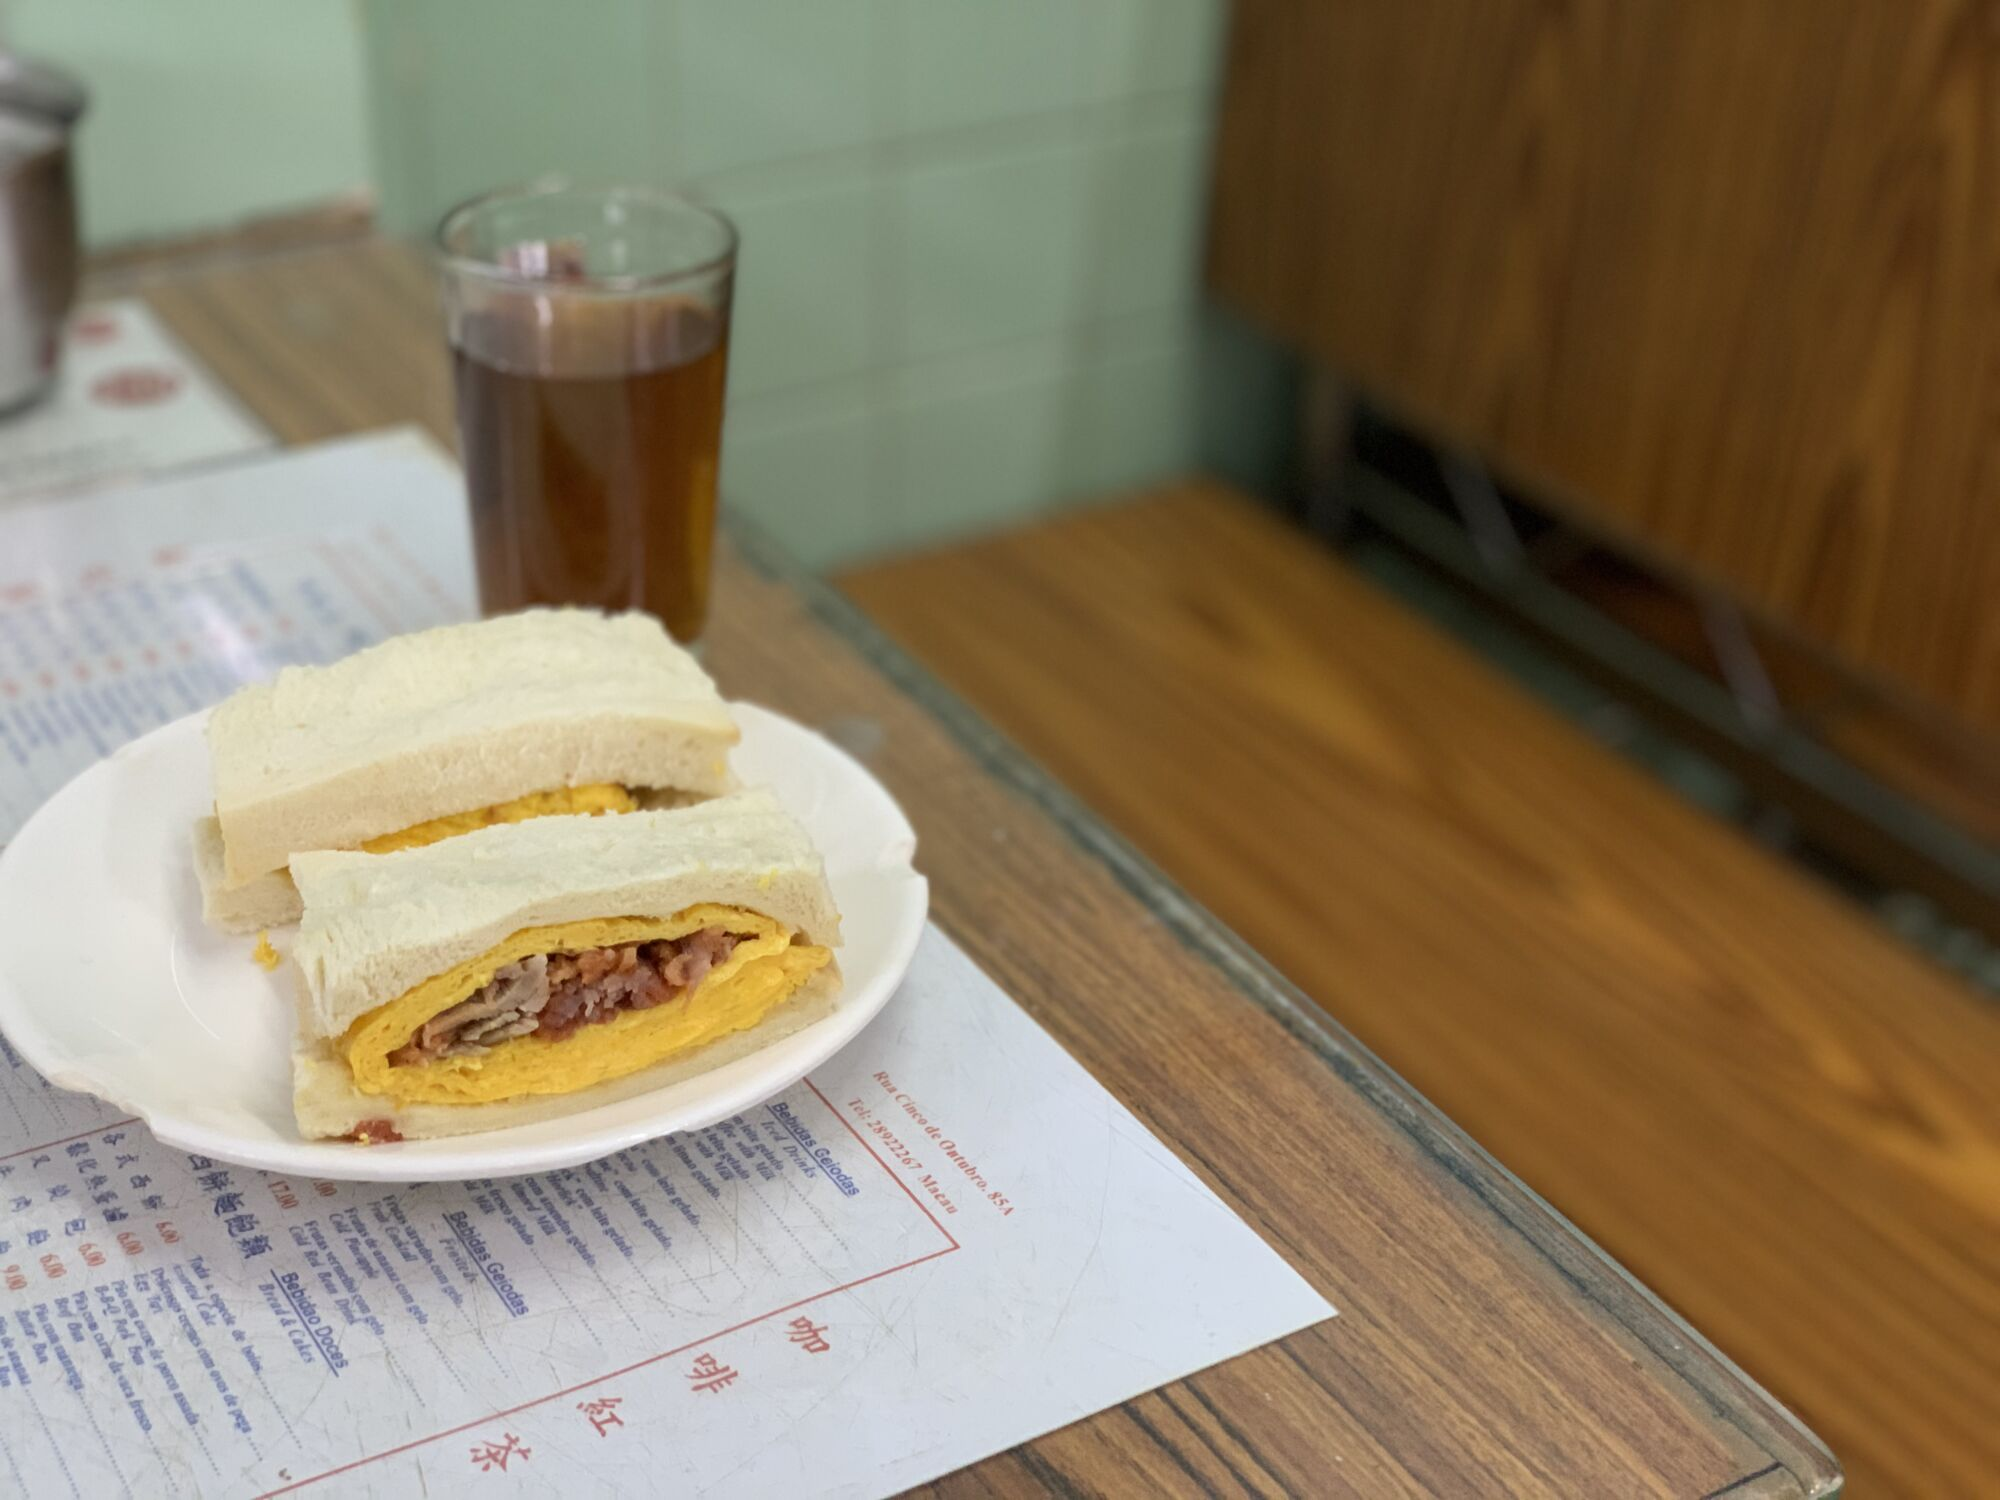 Char Siu and Egg Sandwich from Nam Ping Macau Lifestyle